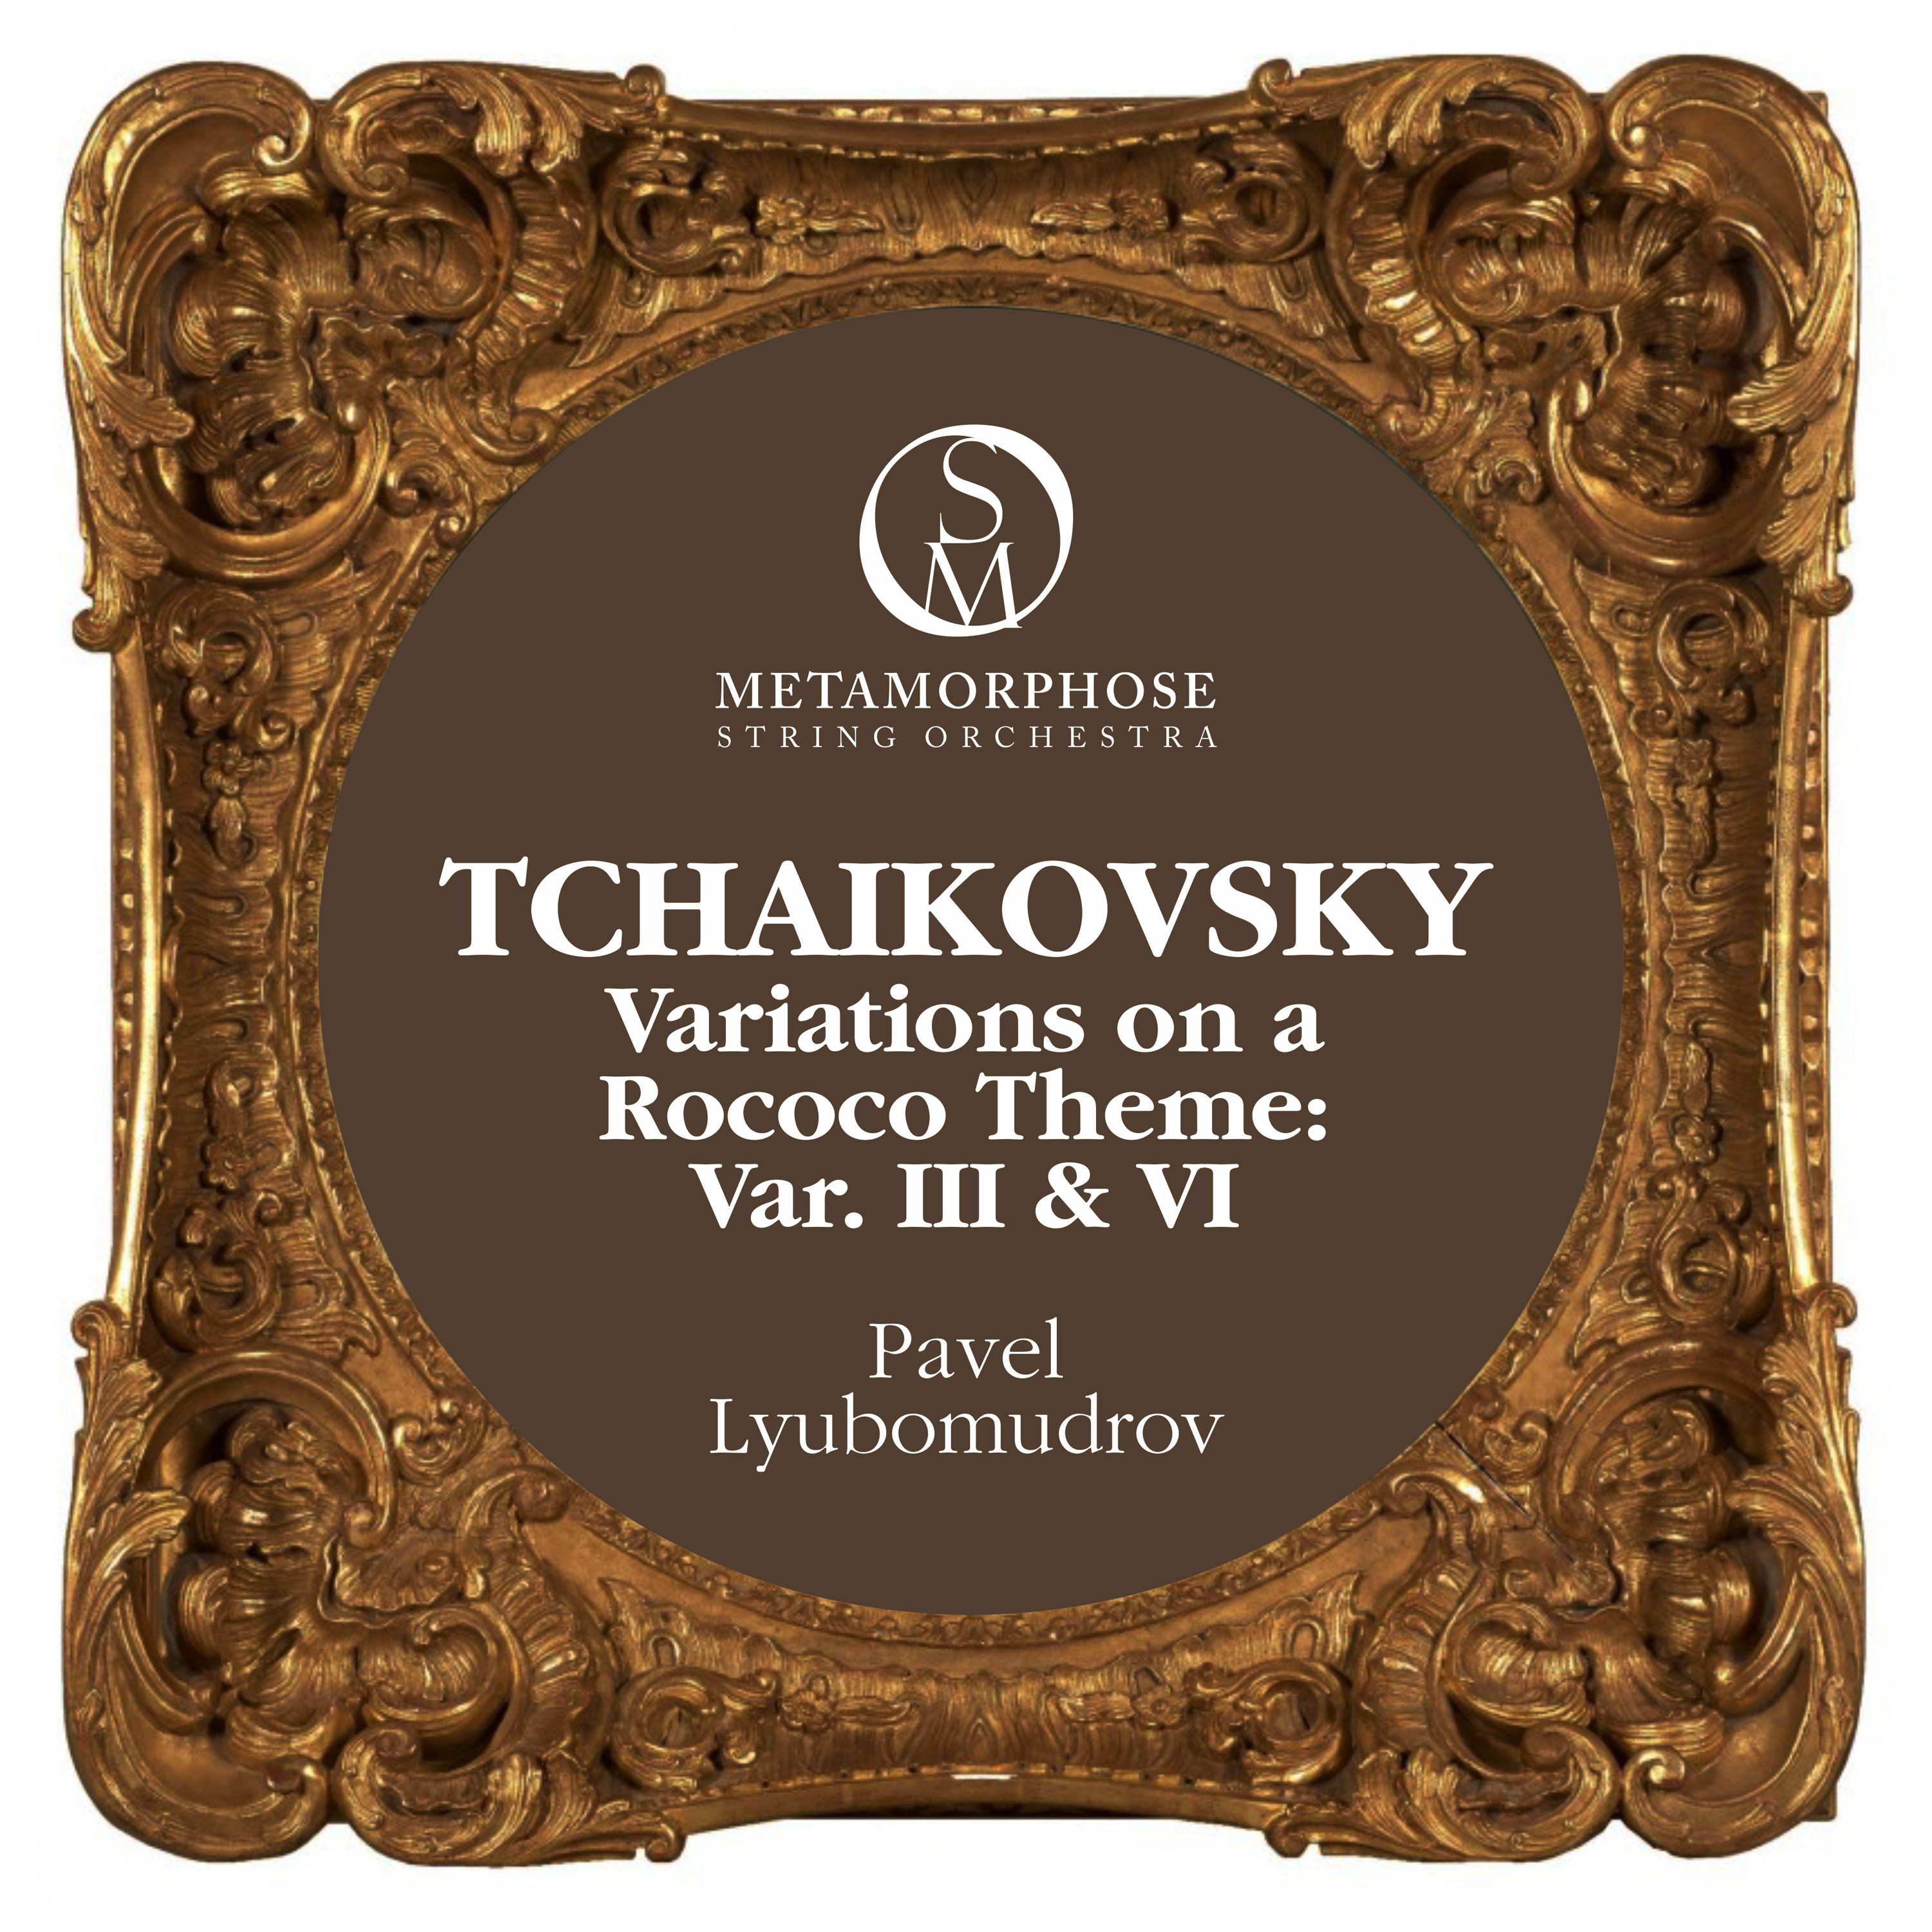 Tchaikovsky: Variations on a Rococo Theme, Op. 33: Var. III & VII